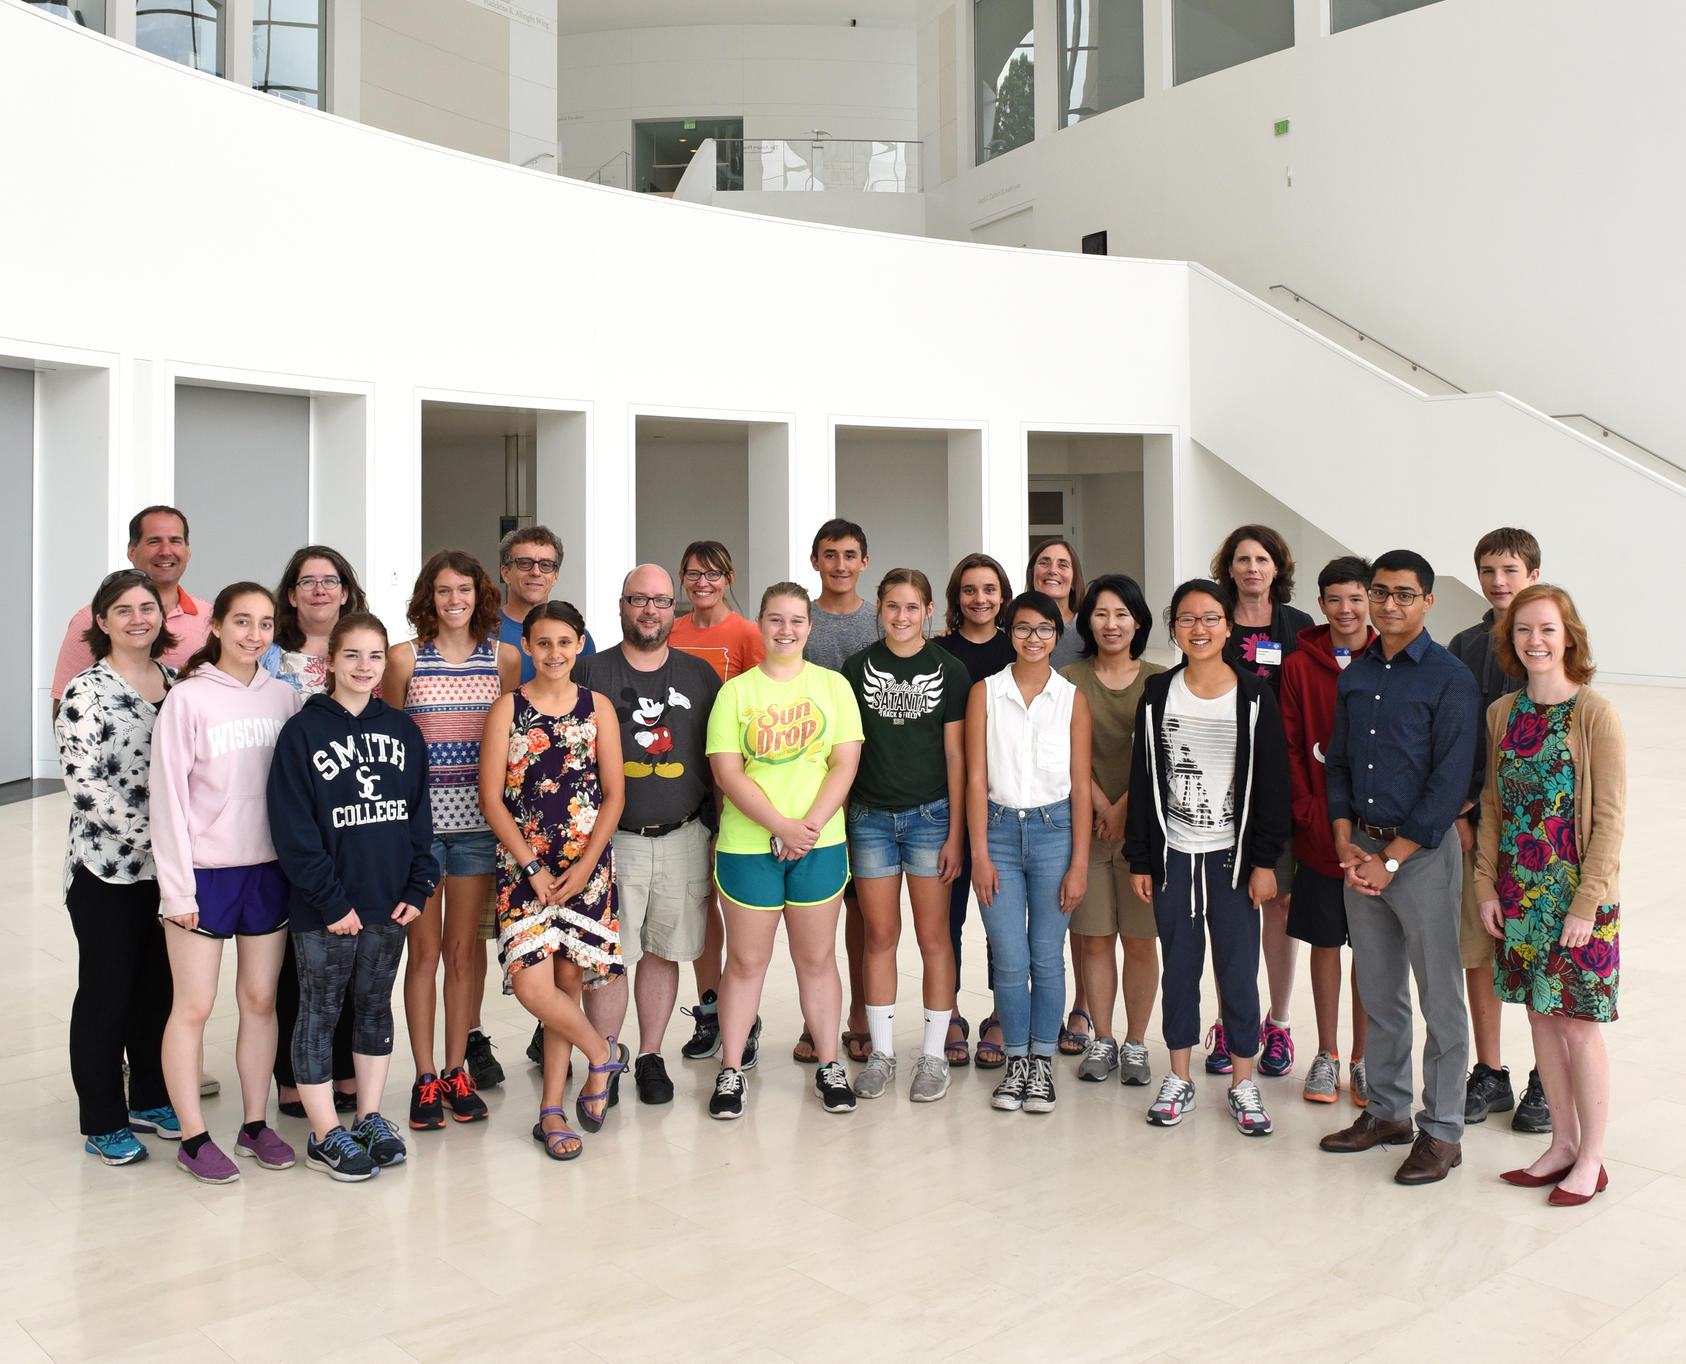 NHD participants visit the U.S. Institute of Peace during award week in June, 2016.